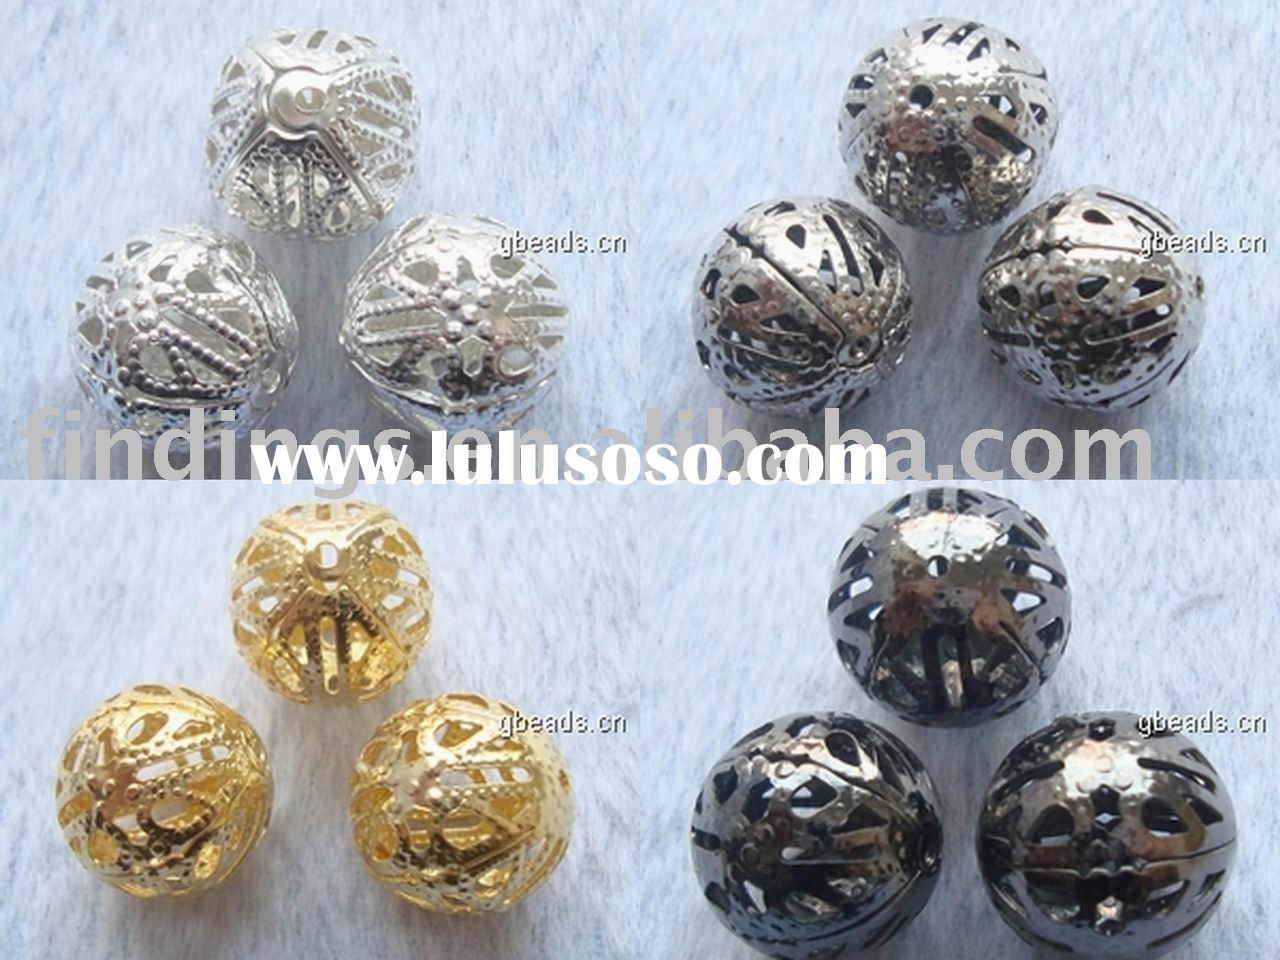 Jewelry findings,cap beads, connectors, wholesale beads, Chinese style, acrylic beads